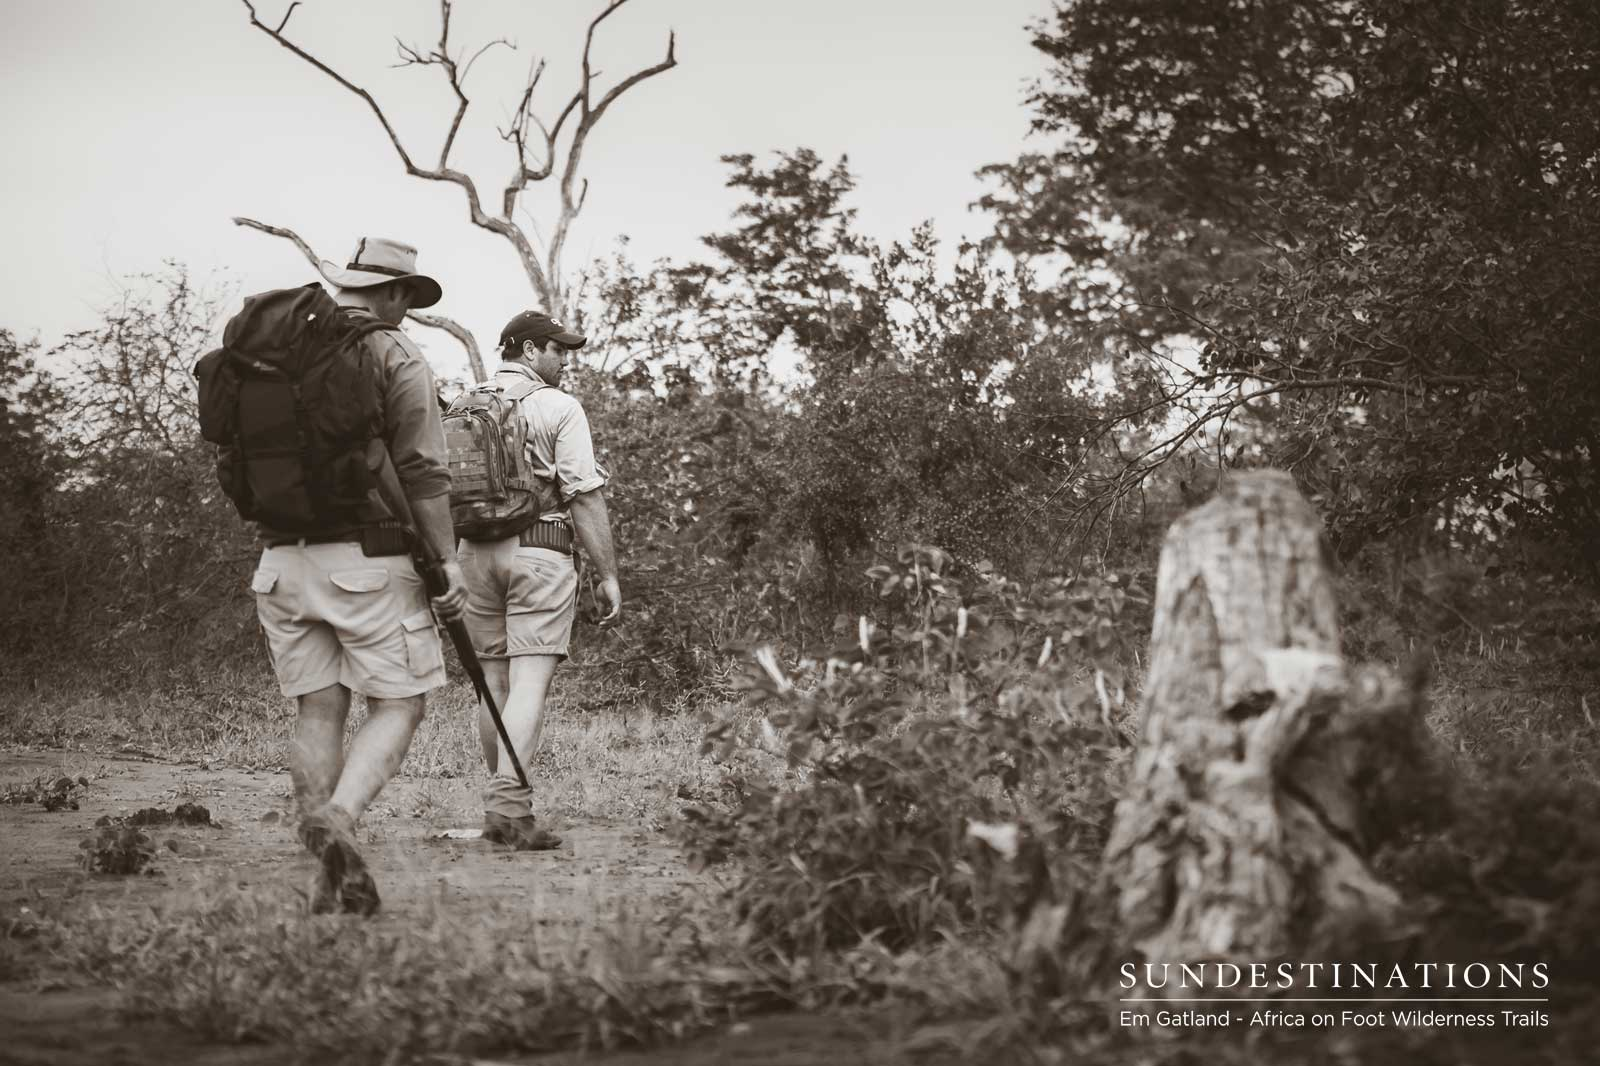 We Found Lions on Foot During Our 3 Day Kruger Walking Trail